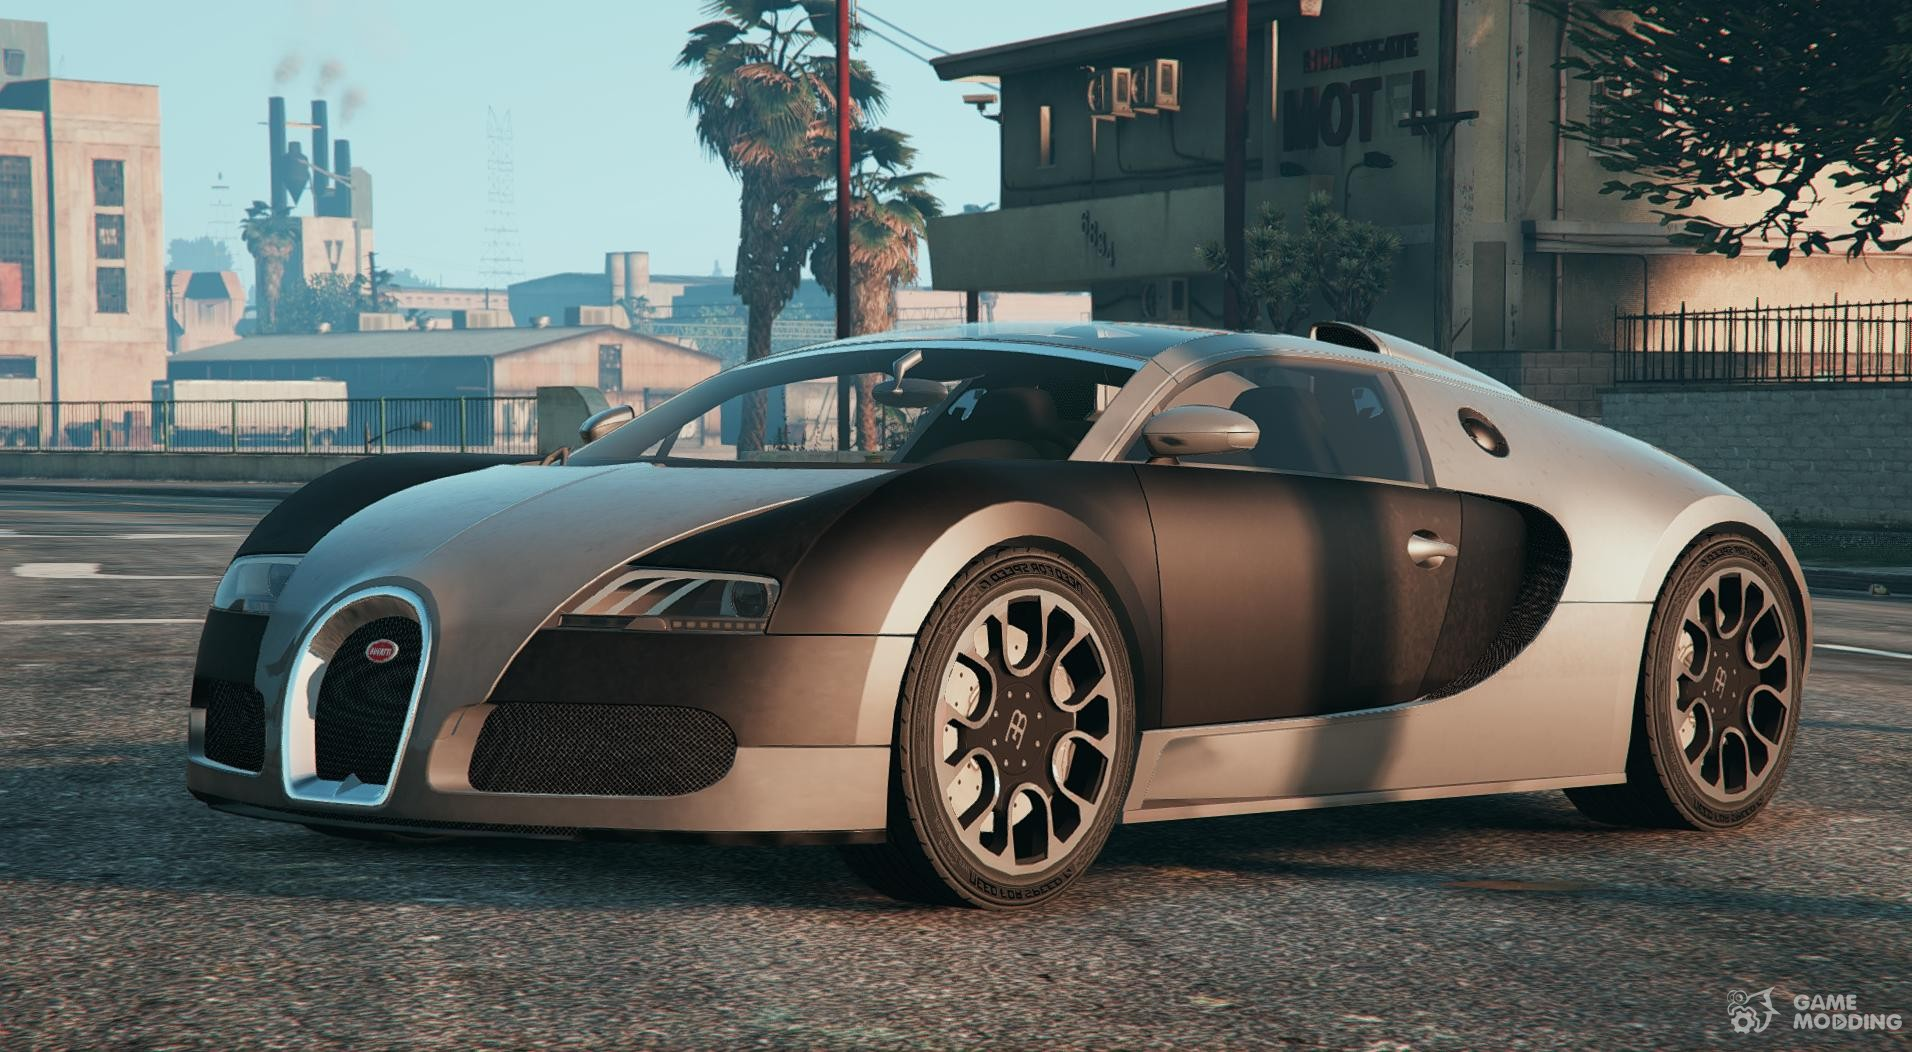 c1ca9e768b8fb4710e3af6856569342e836048101f289ca3773b02e463990019 Wonderful Bugatti Veyron Xbox 360 Games Cars Trend